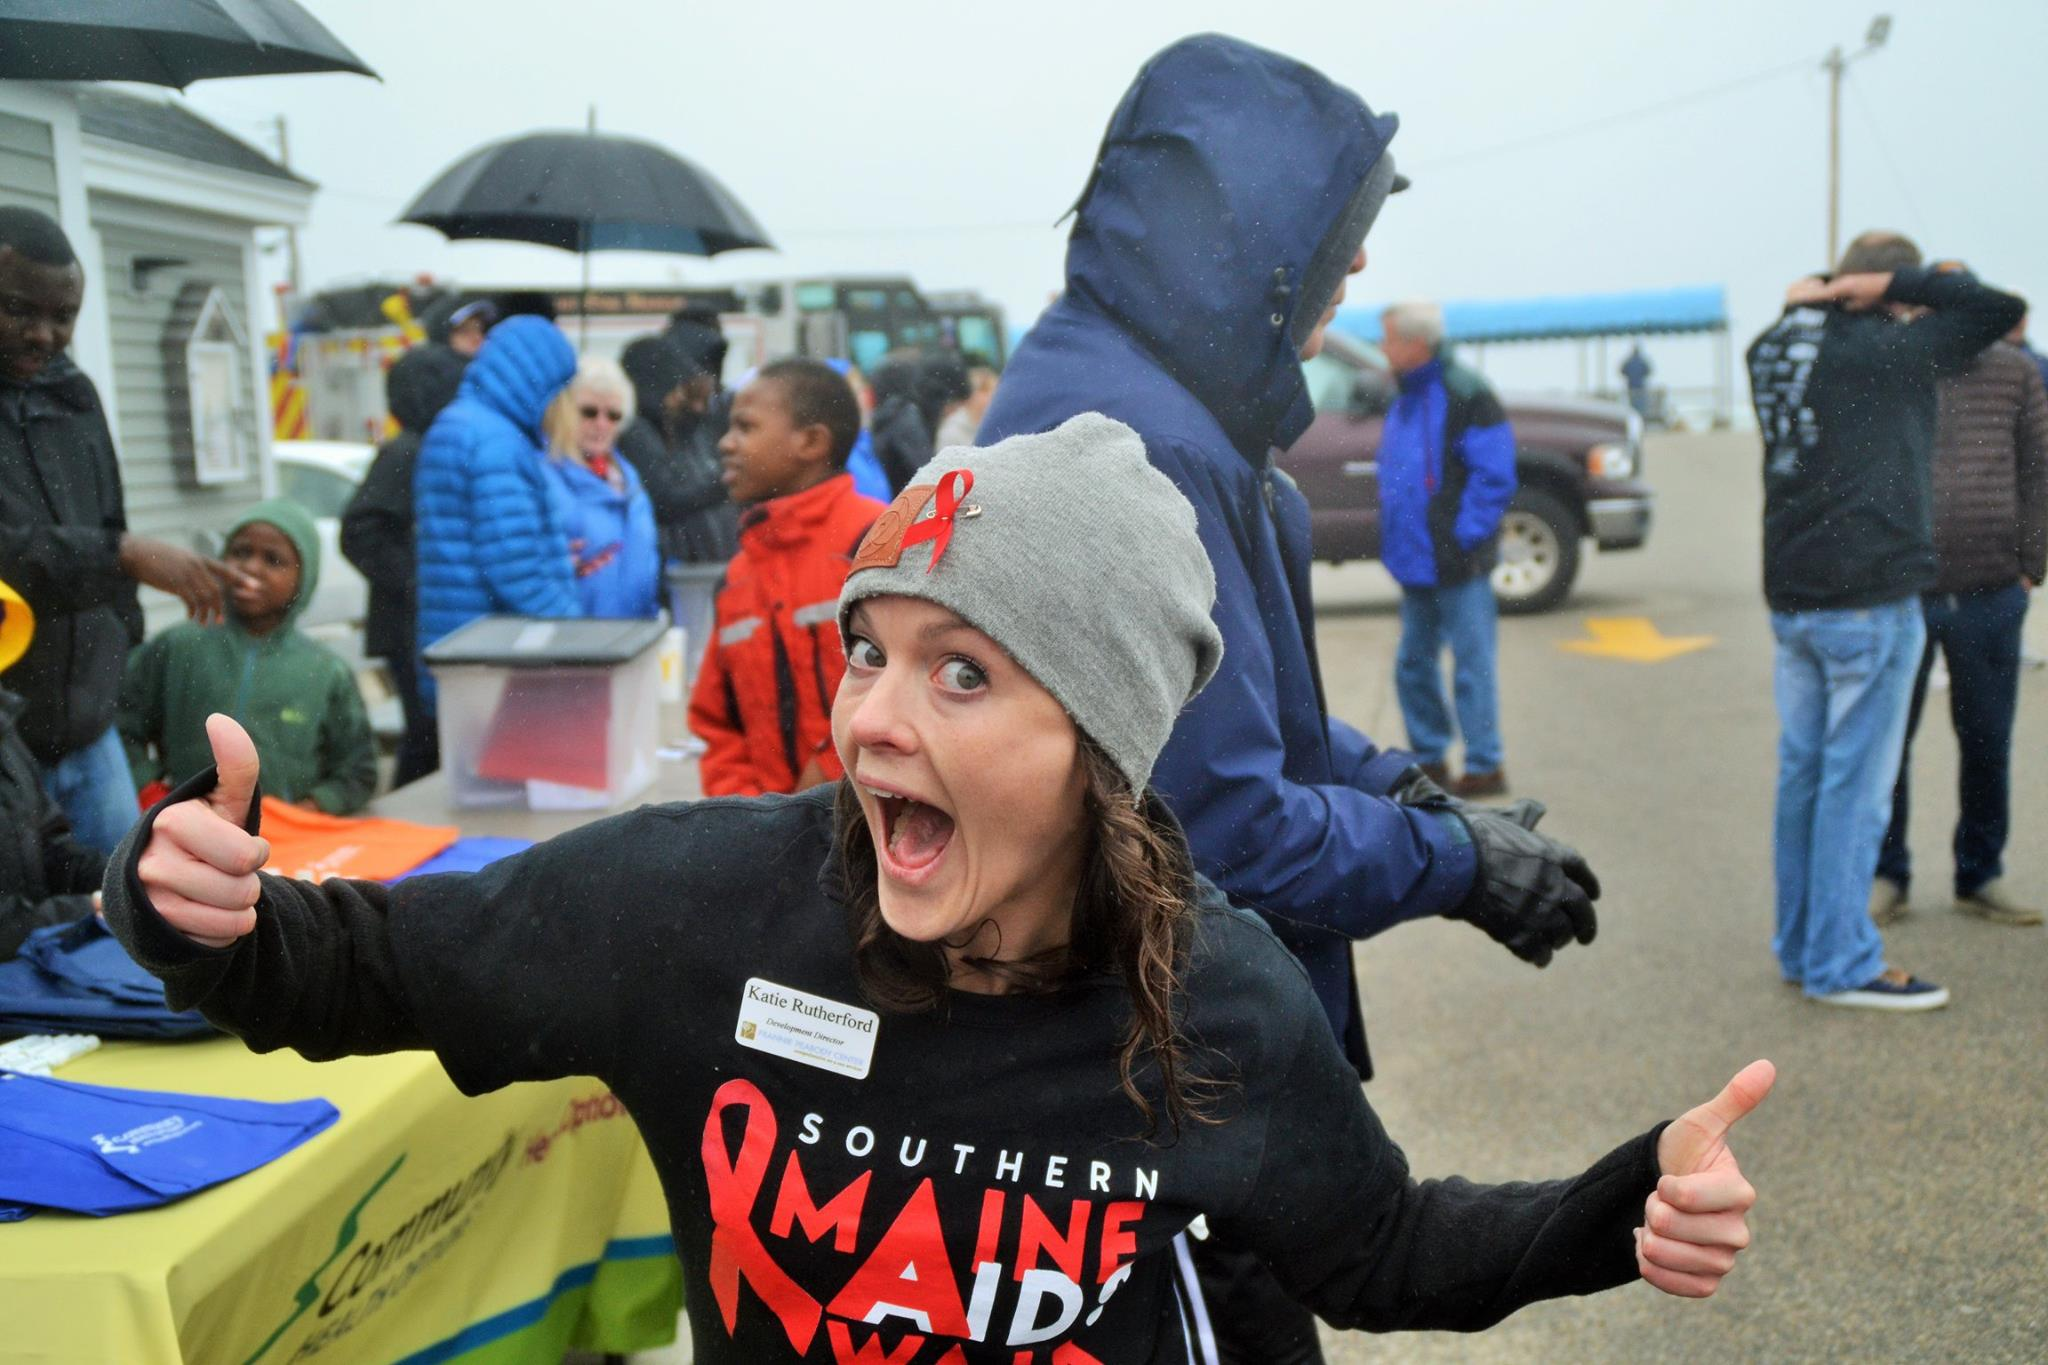 katie_rutherford_southern_maine_aids_walk.png